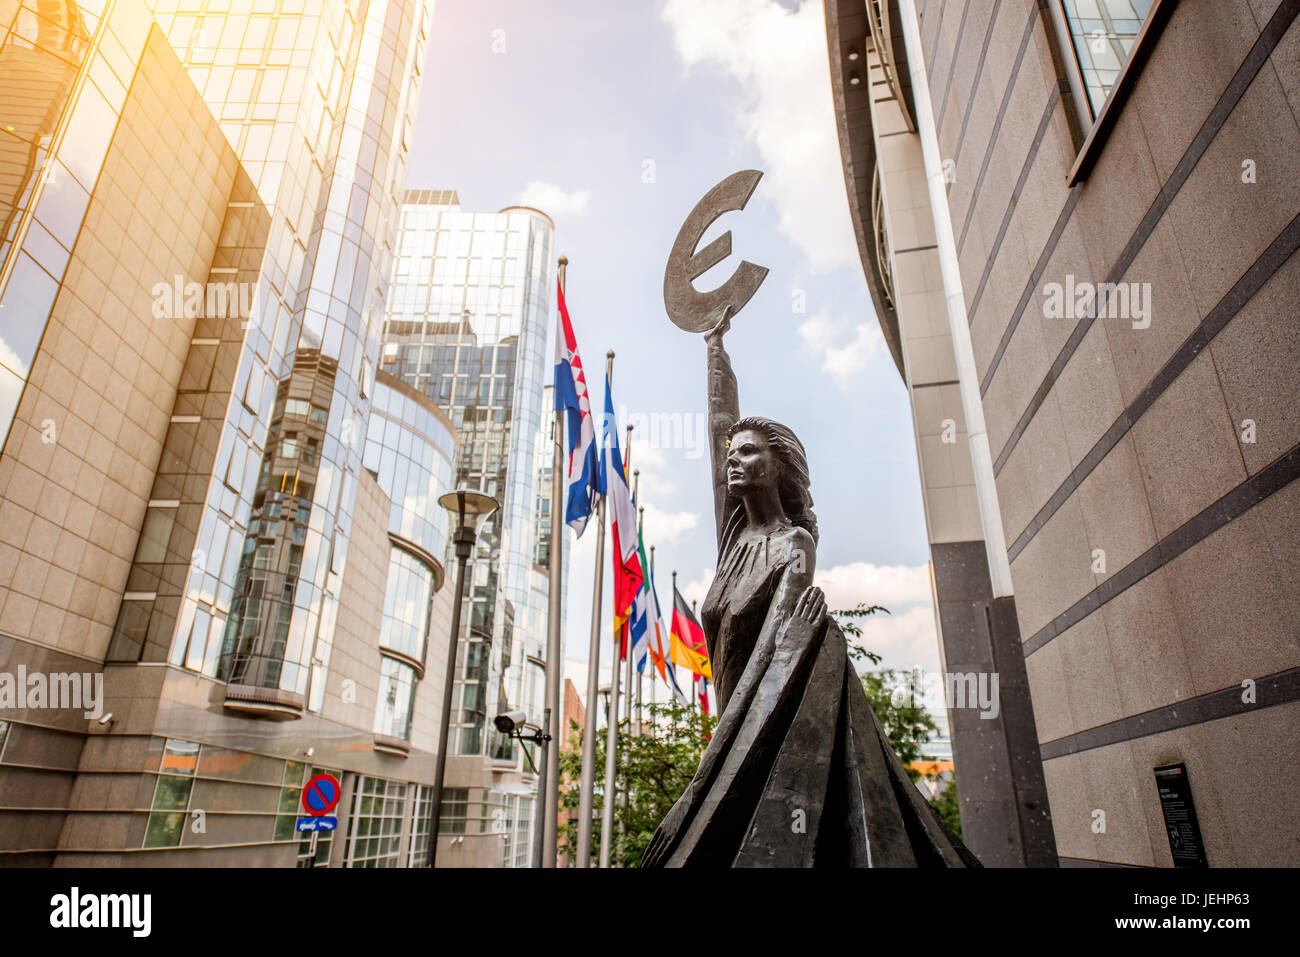 European parliament building in Brussels - Stock Image